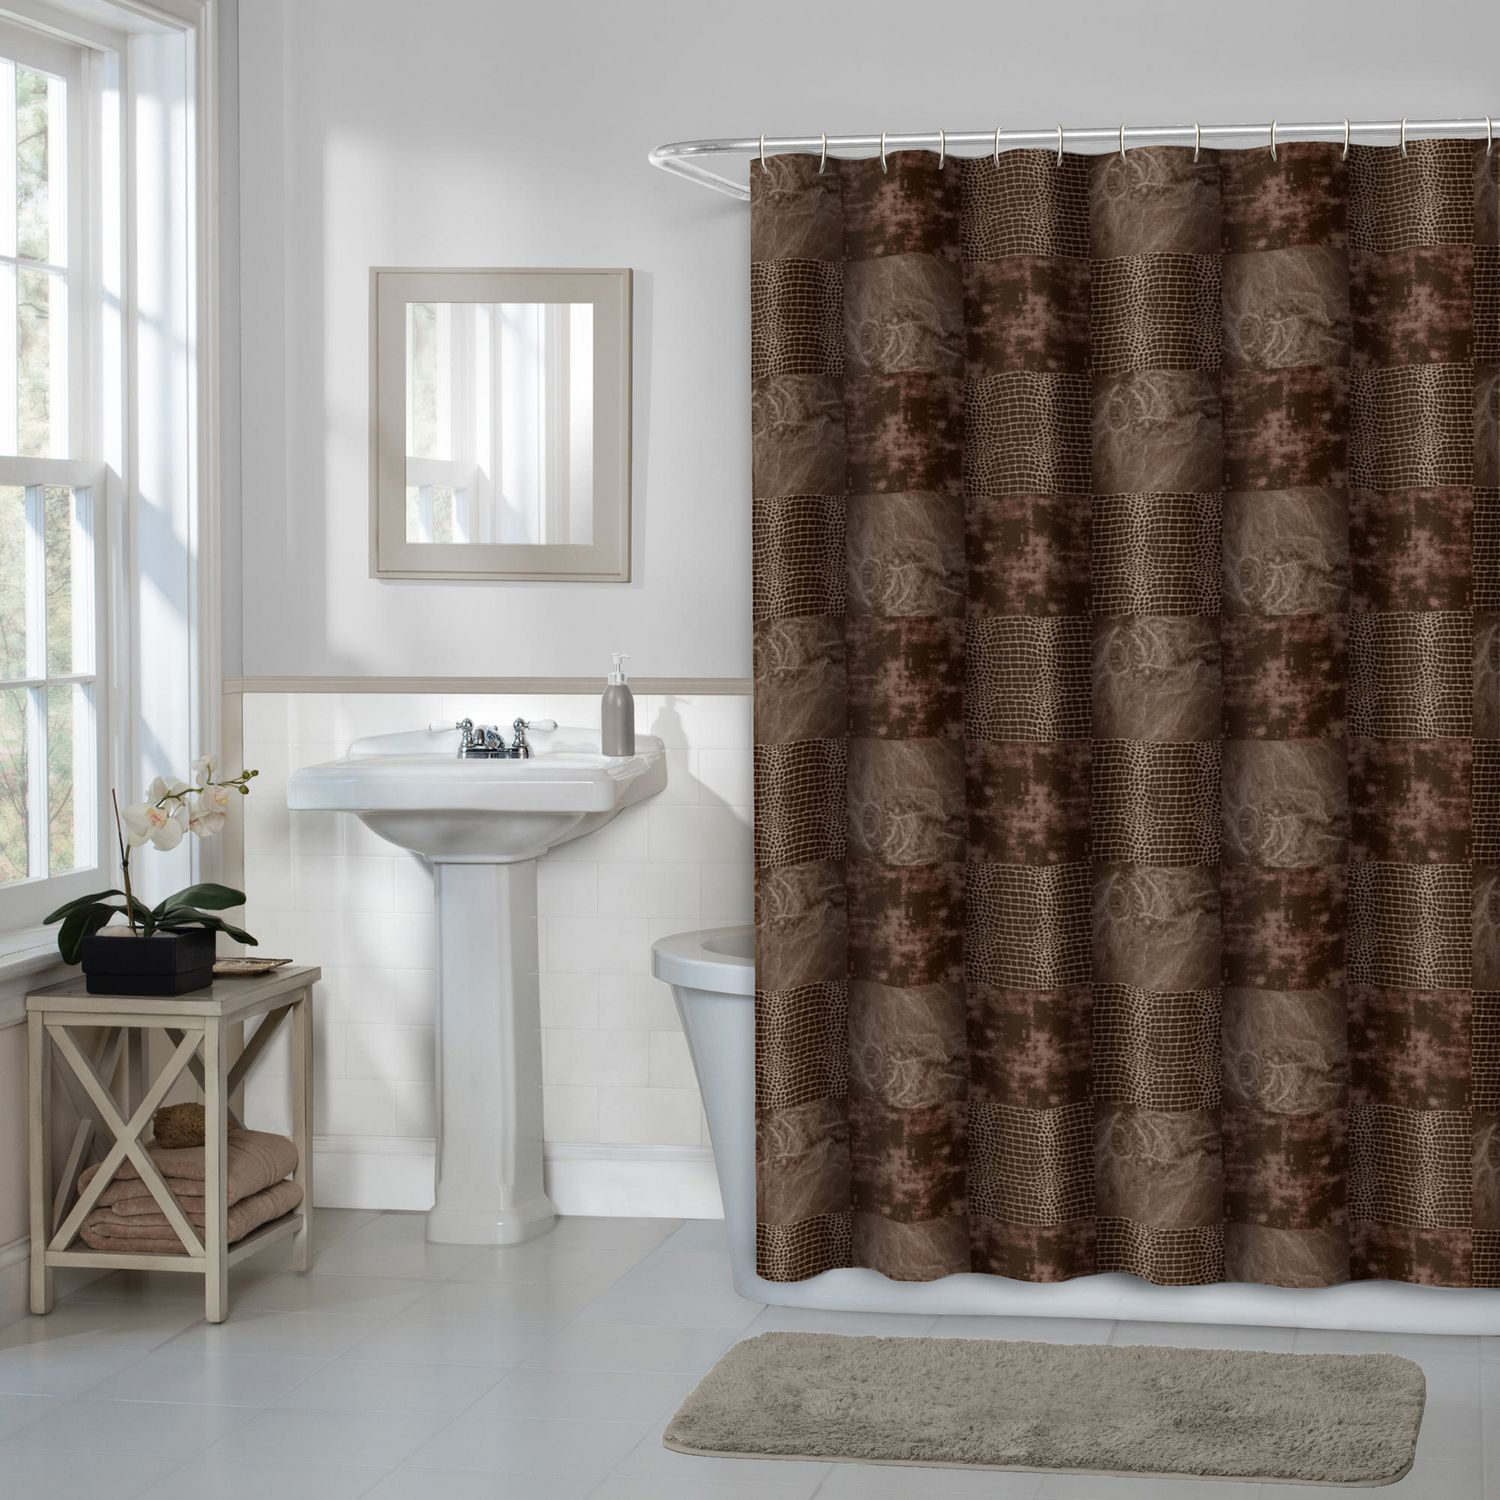 Hometrends Home Trends Wildy Fabric Shower Curtain 70 Inches X 72 Inches Chocolate